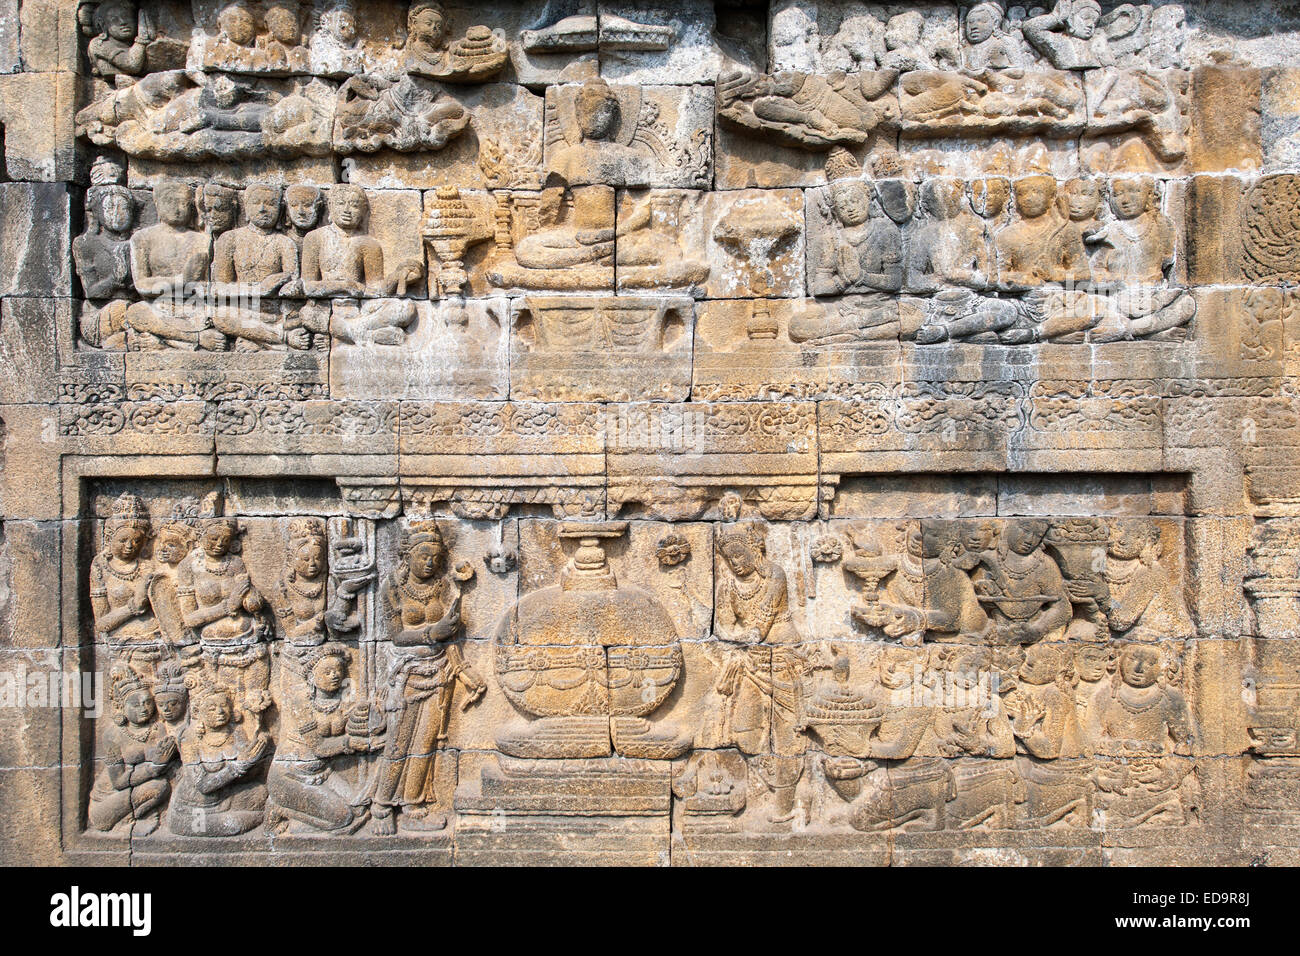 Karmawibhangga bas reliefs (160 of them) carved in the stone of Borobodur, a 9th-century Buddhist Temple in Magelang, - Stock Image